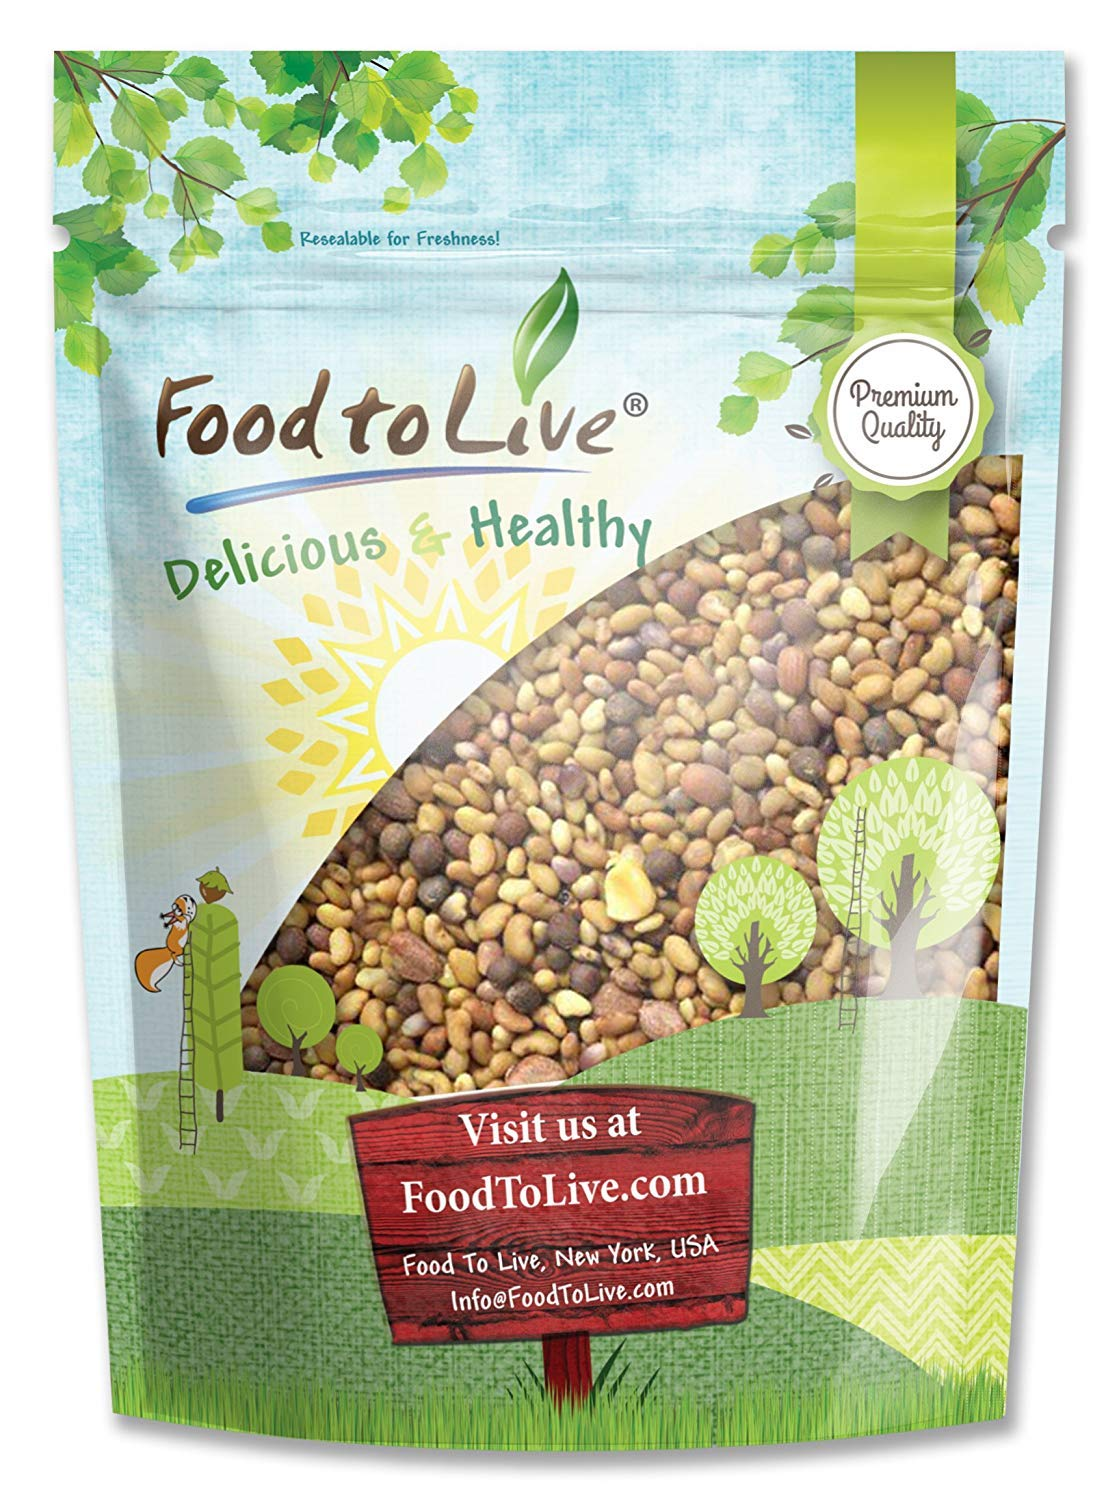 Food to Live Salad Mix of Sprouting Seeds Broccoli, Clover, Radish Alfalfa 8 Ounce